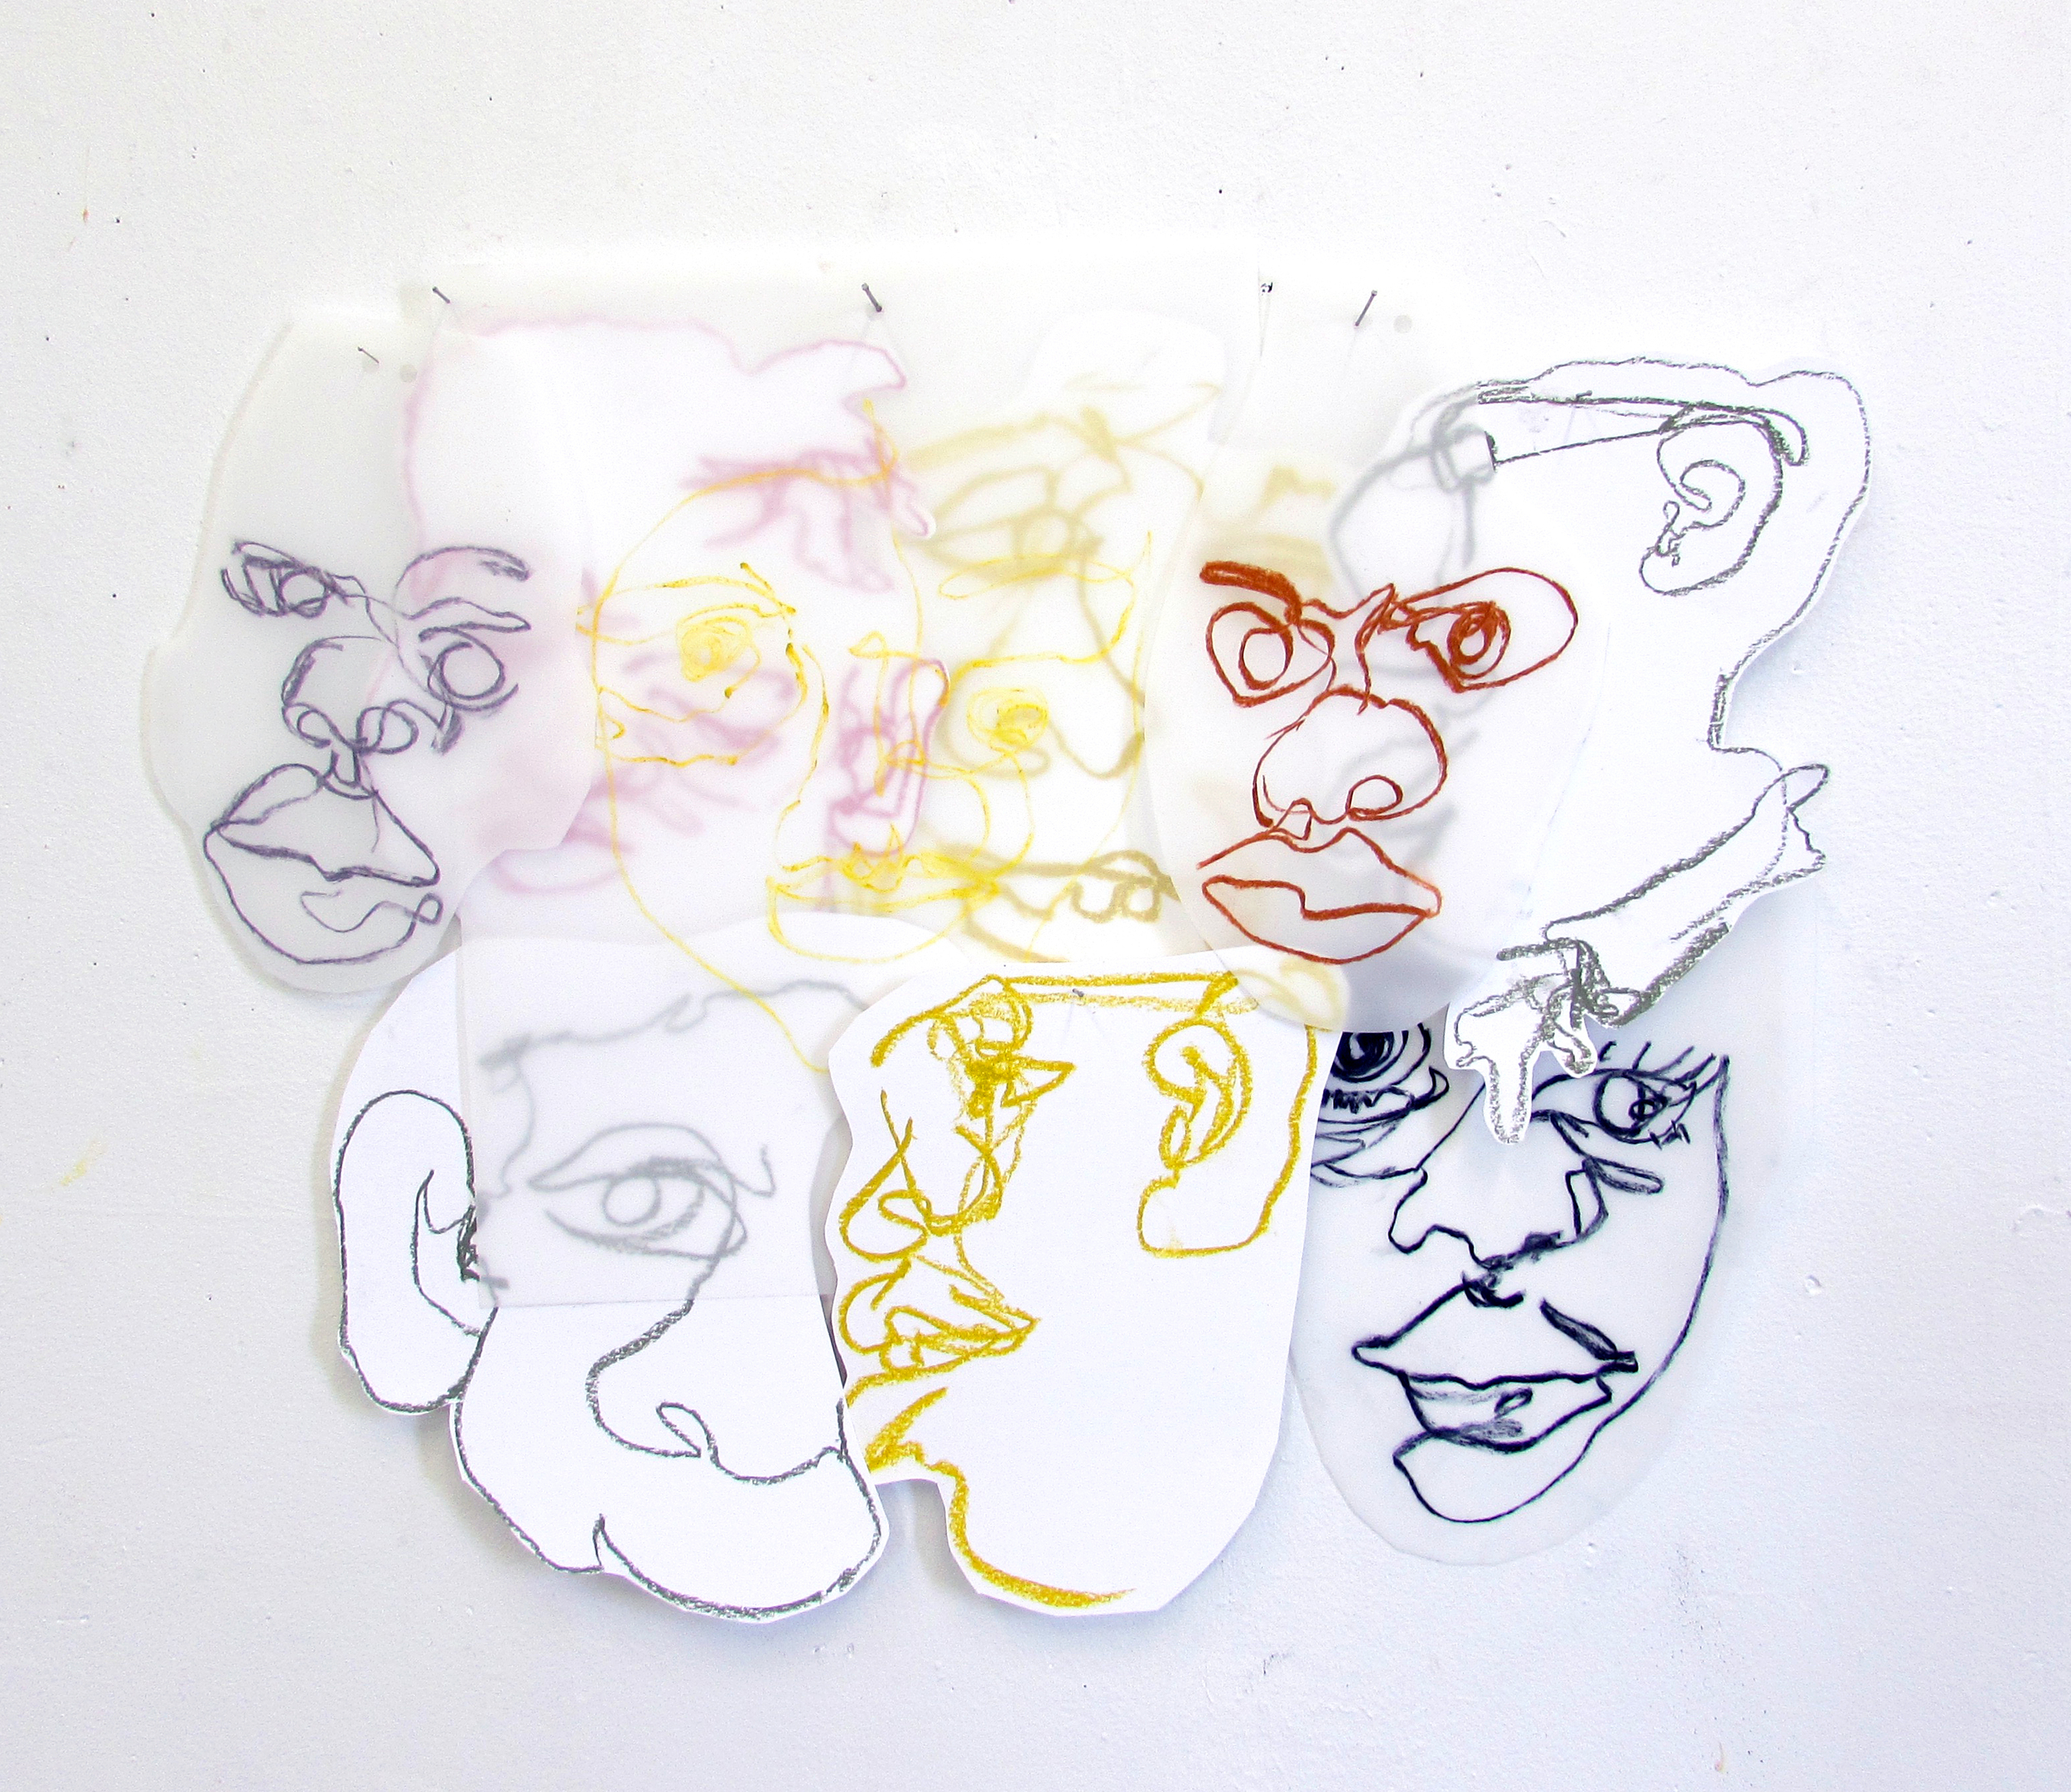 Collaged drawings on paper and dura-lar